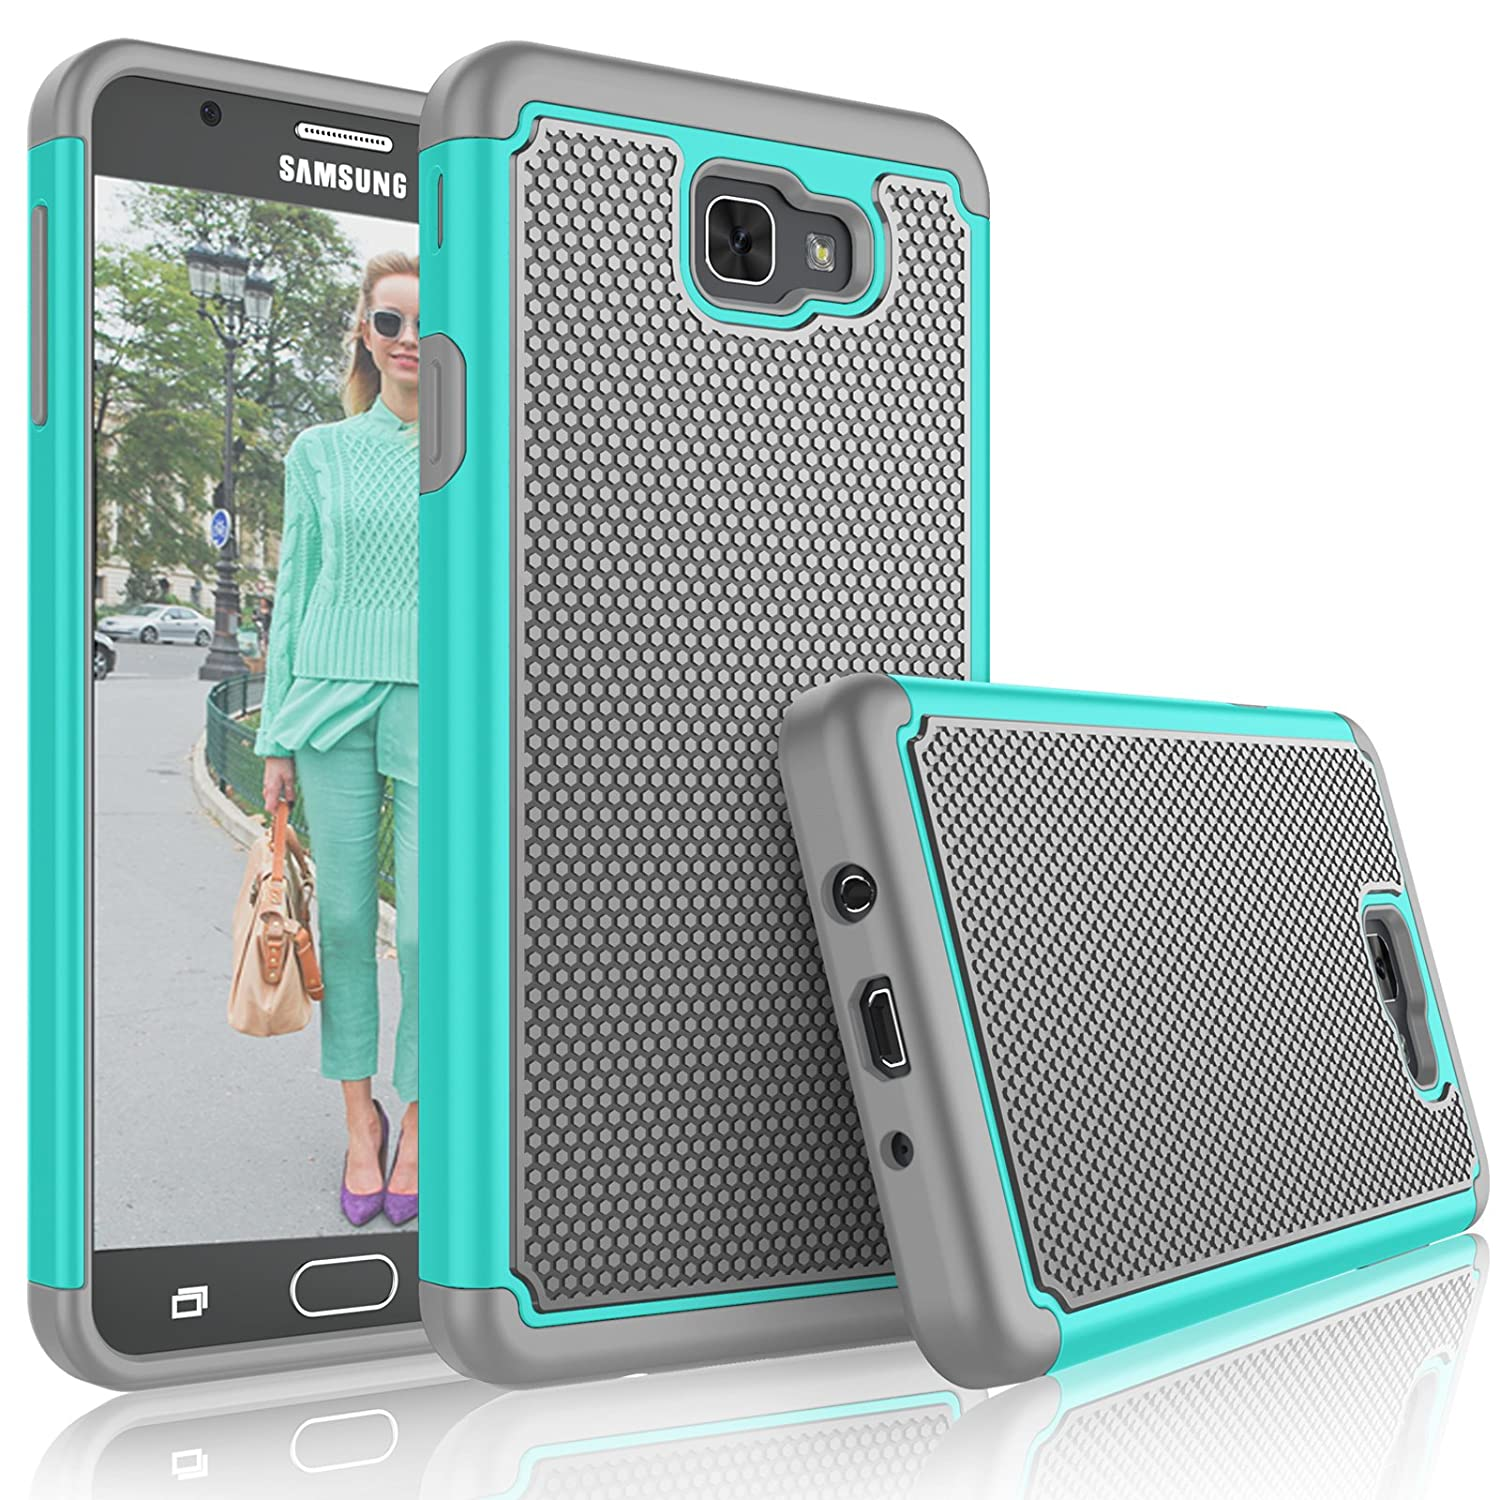 newest 462c5 98d05 Tekcoo for Galaxy J7 Sky Pro Case/for Galaxy J7 V/J7V/J7 Perx Cute Case,  [Tmajor] Shock Absorbing [Turquoise] Rubber Plastic Scratch Resistant ...